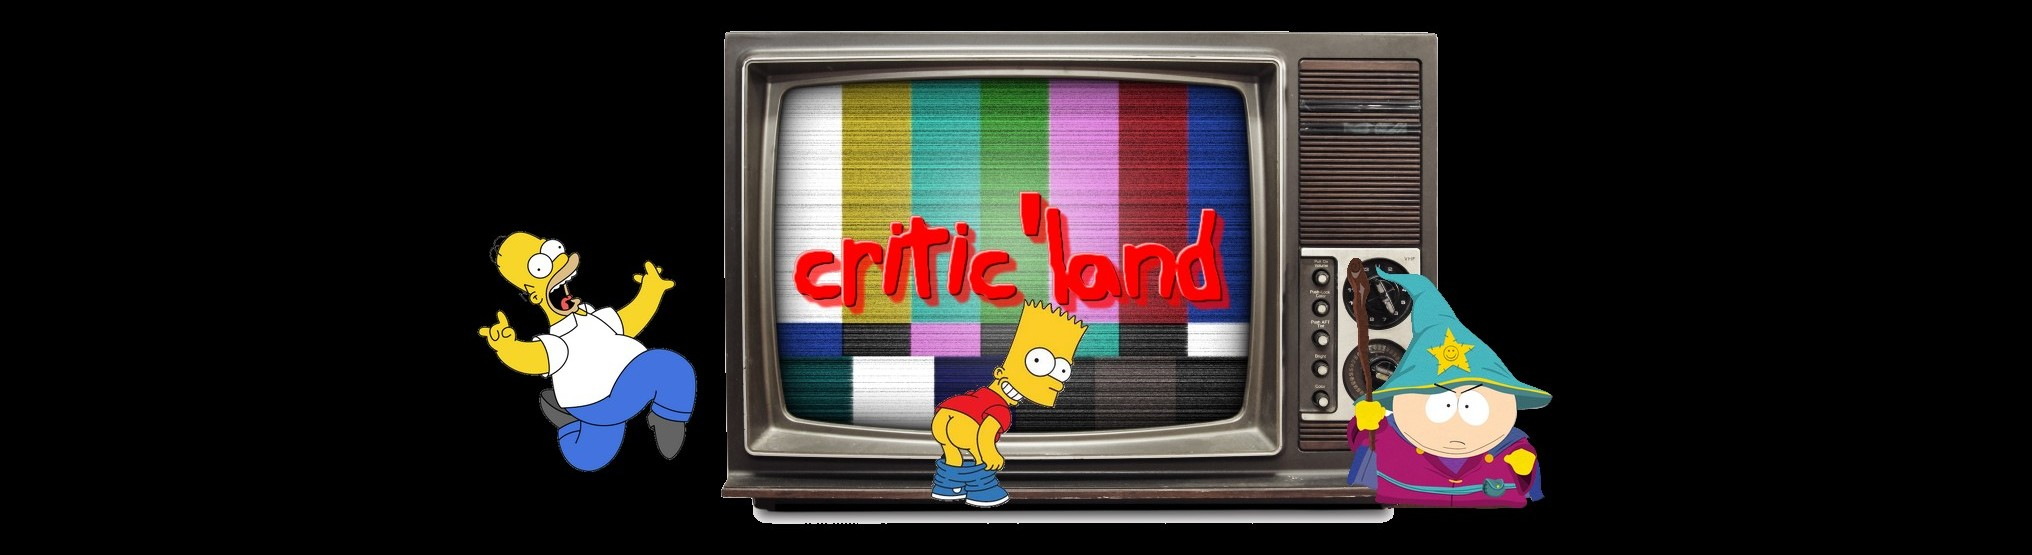 Critic'Land : Du Ciné , Des Séries & du Fun !